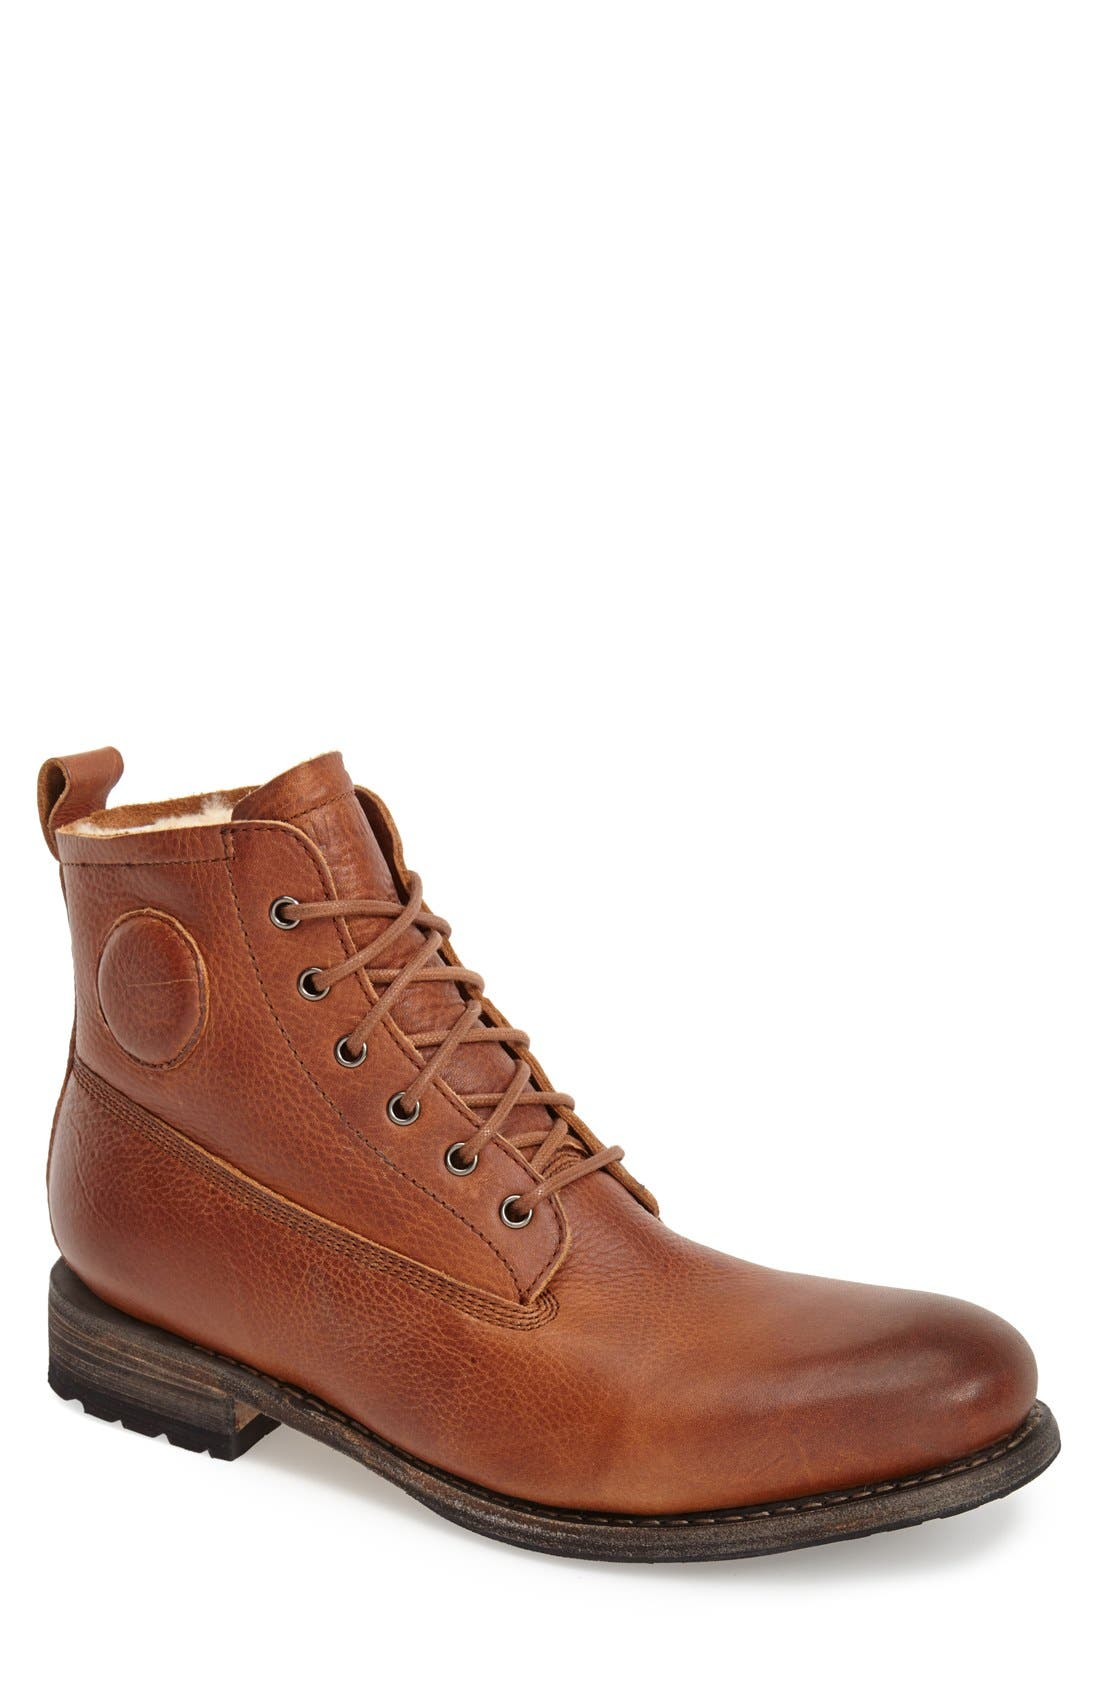 'Gull' Plain Toe Boot,                             Main thumbnail 1, color,                             Cuoio